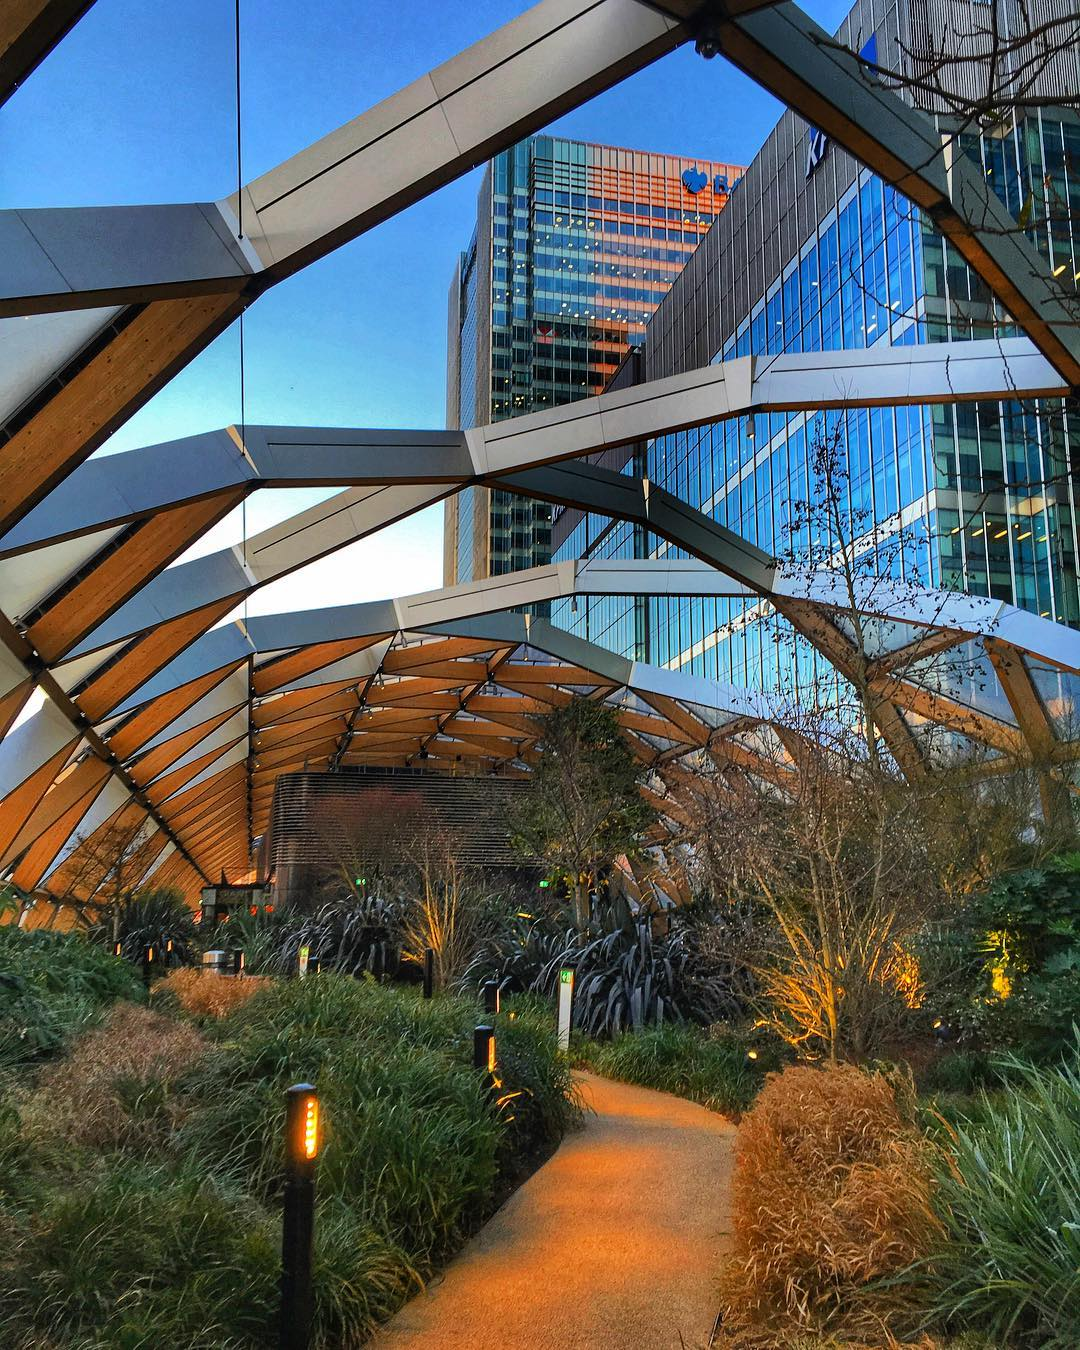 Crossrail Place Roof Garden: Peaceful Park With A Street Food Hall